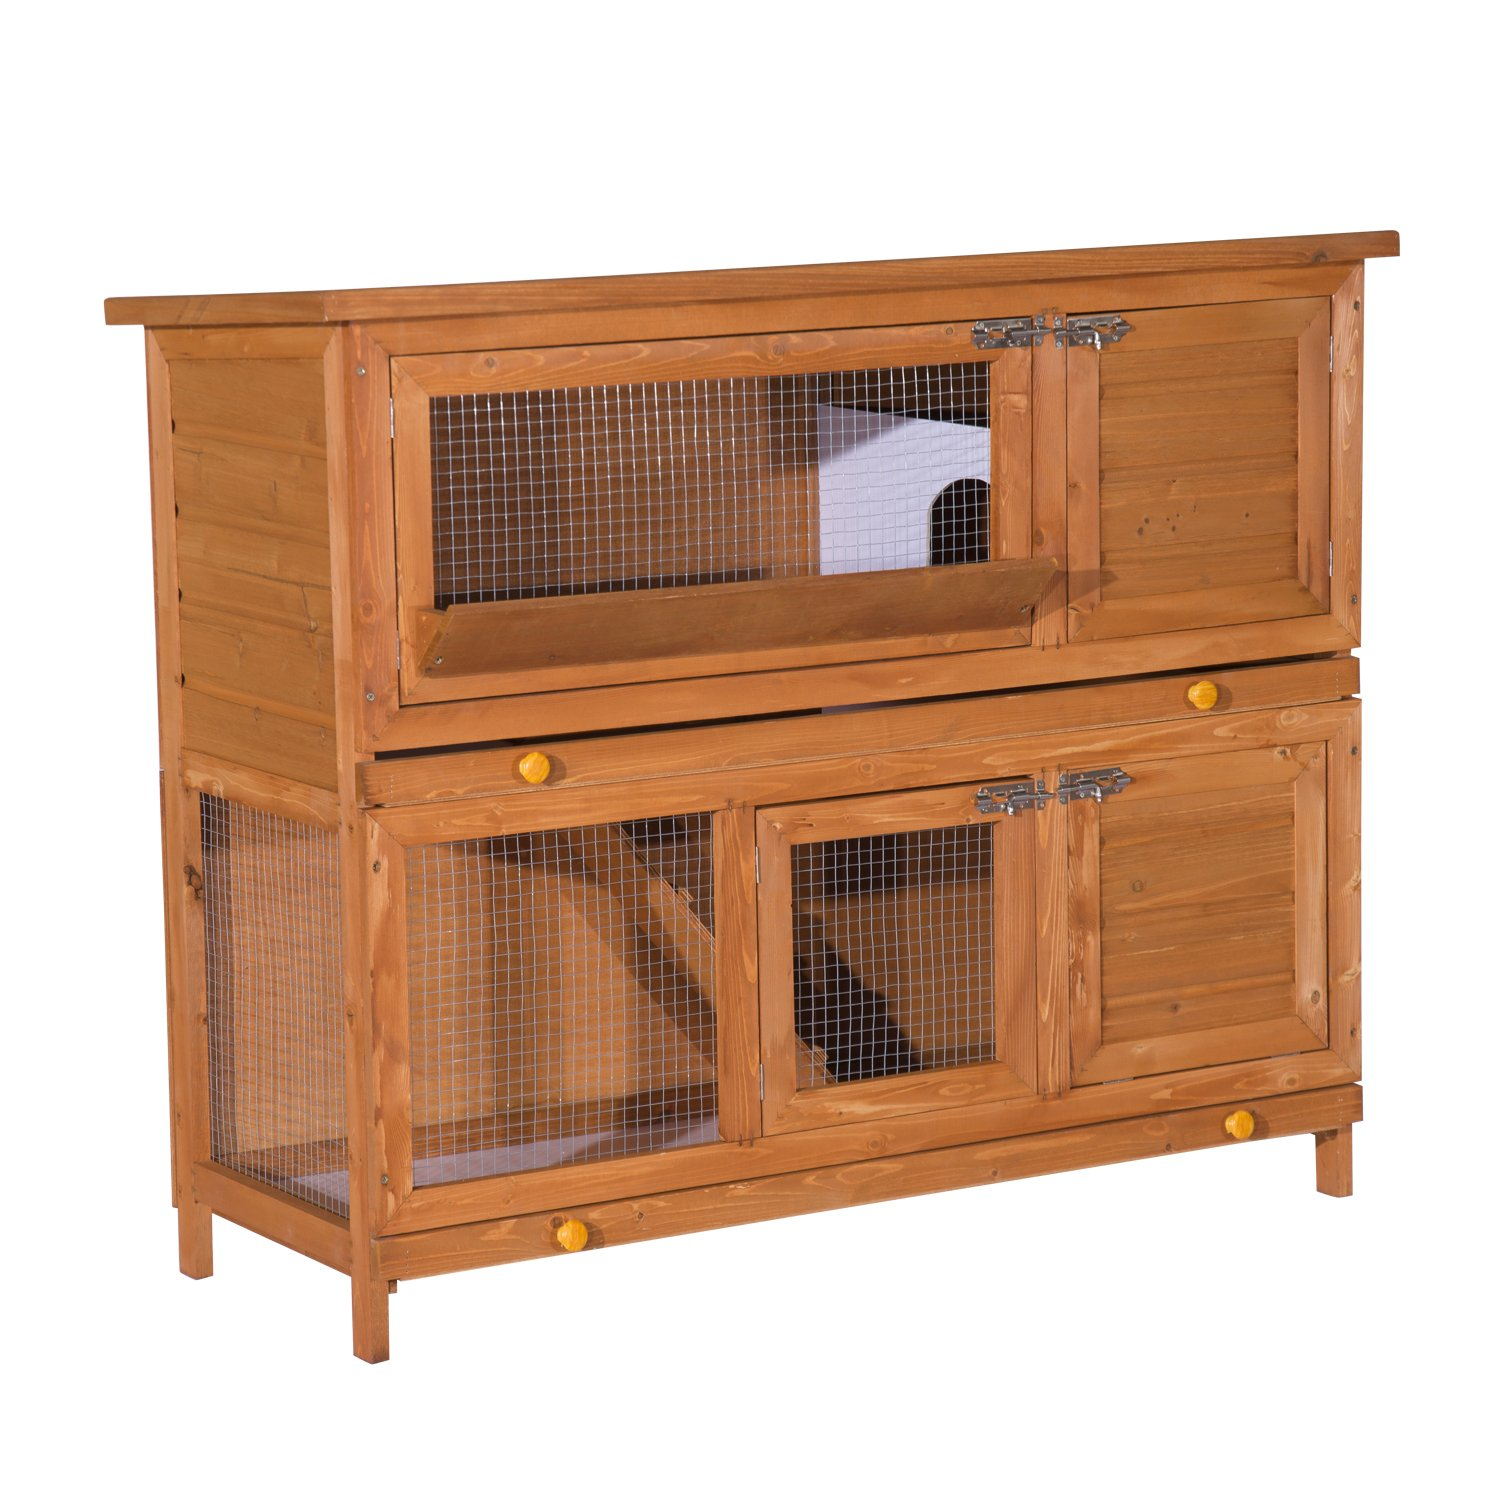 com rabbit dp outdoor trixie sloped pine amazon products for sale hutch roof m pet hutches garden with glazed handmade